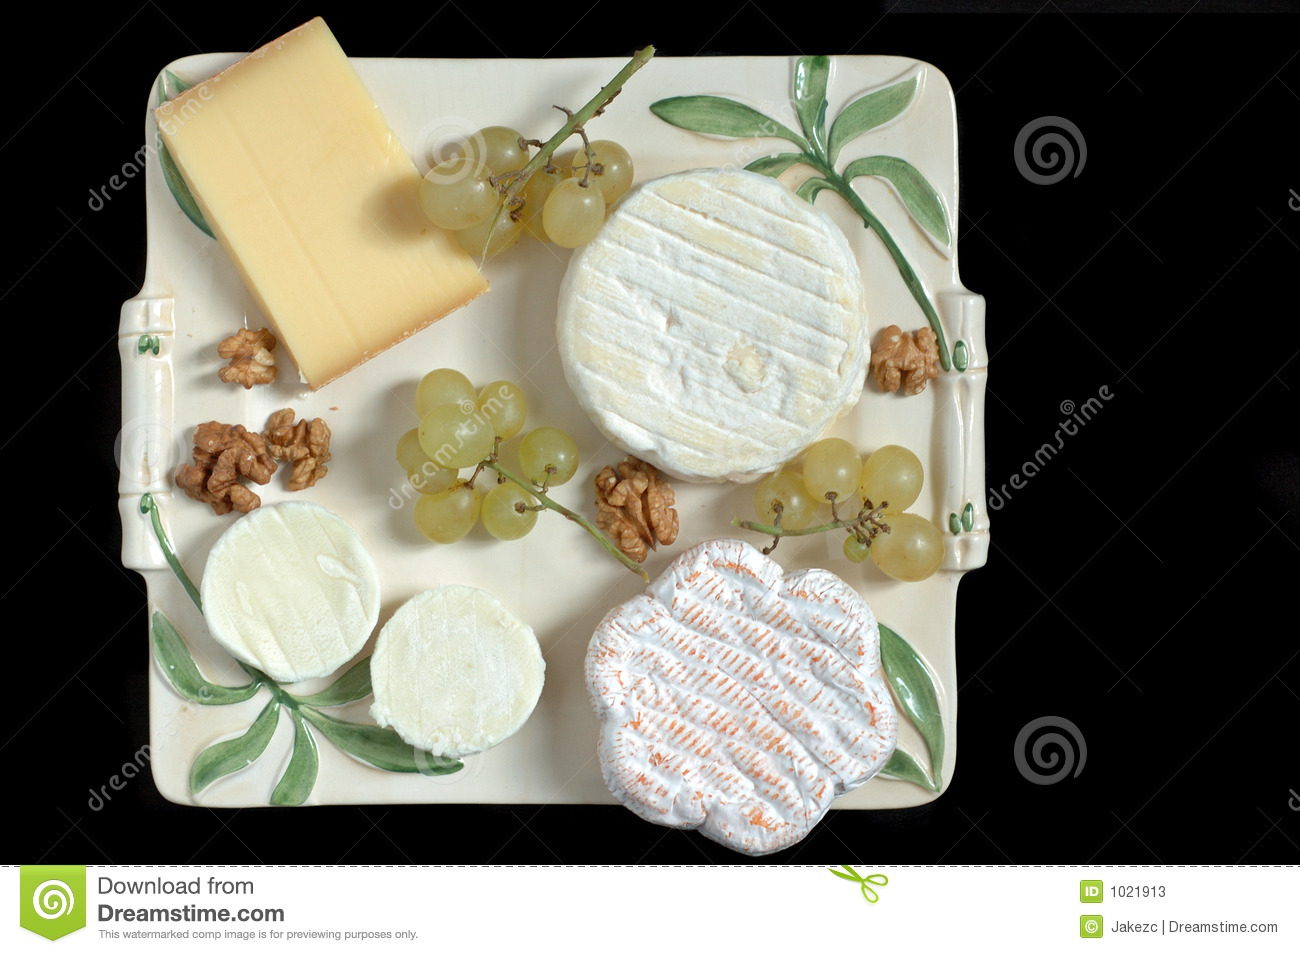 French cheeseboard (overview)